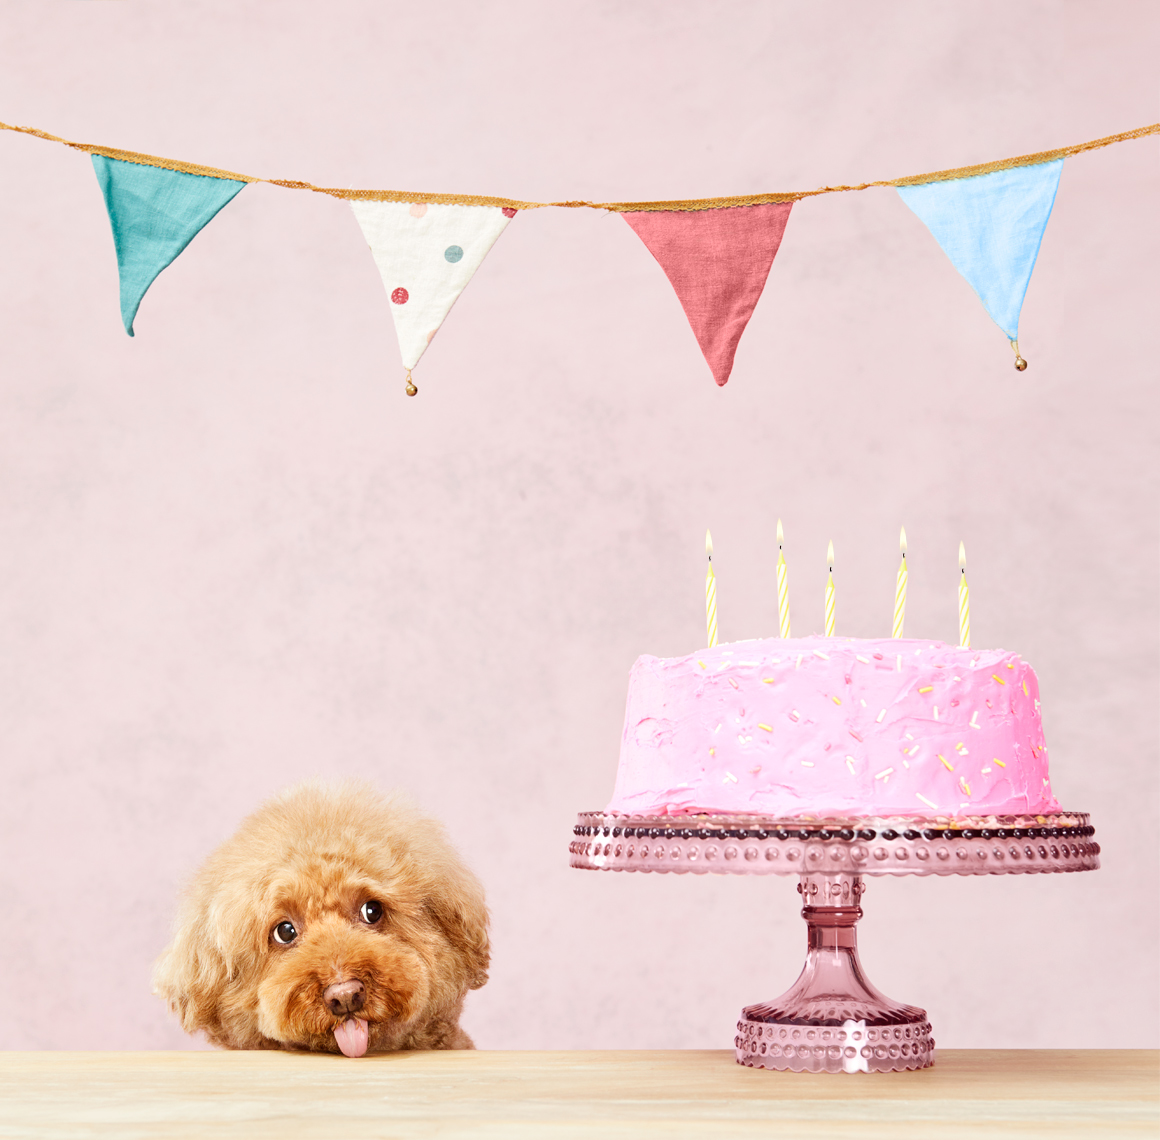 Poodle birthday cake and flags